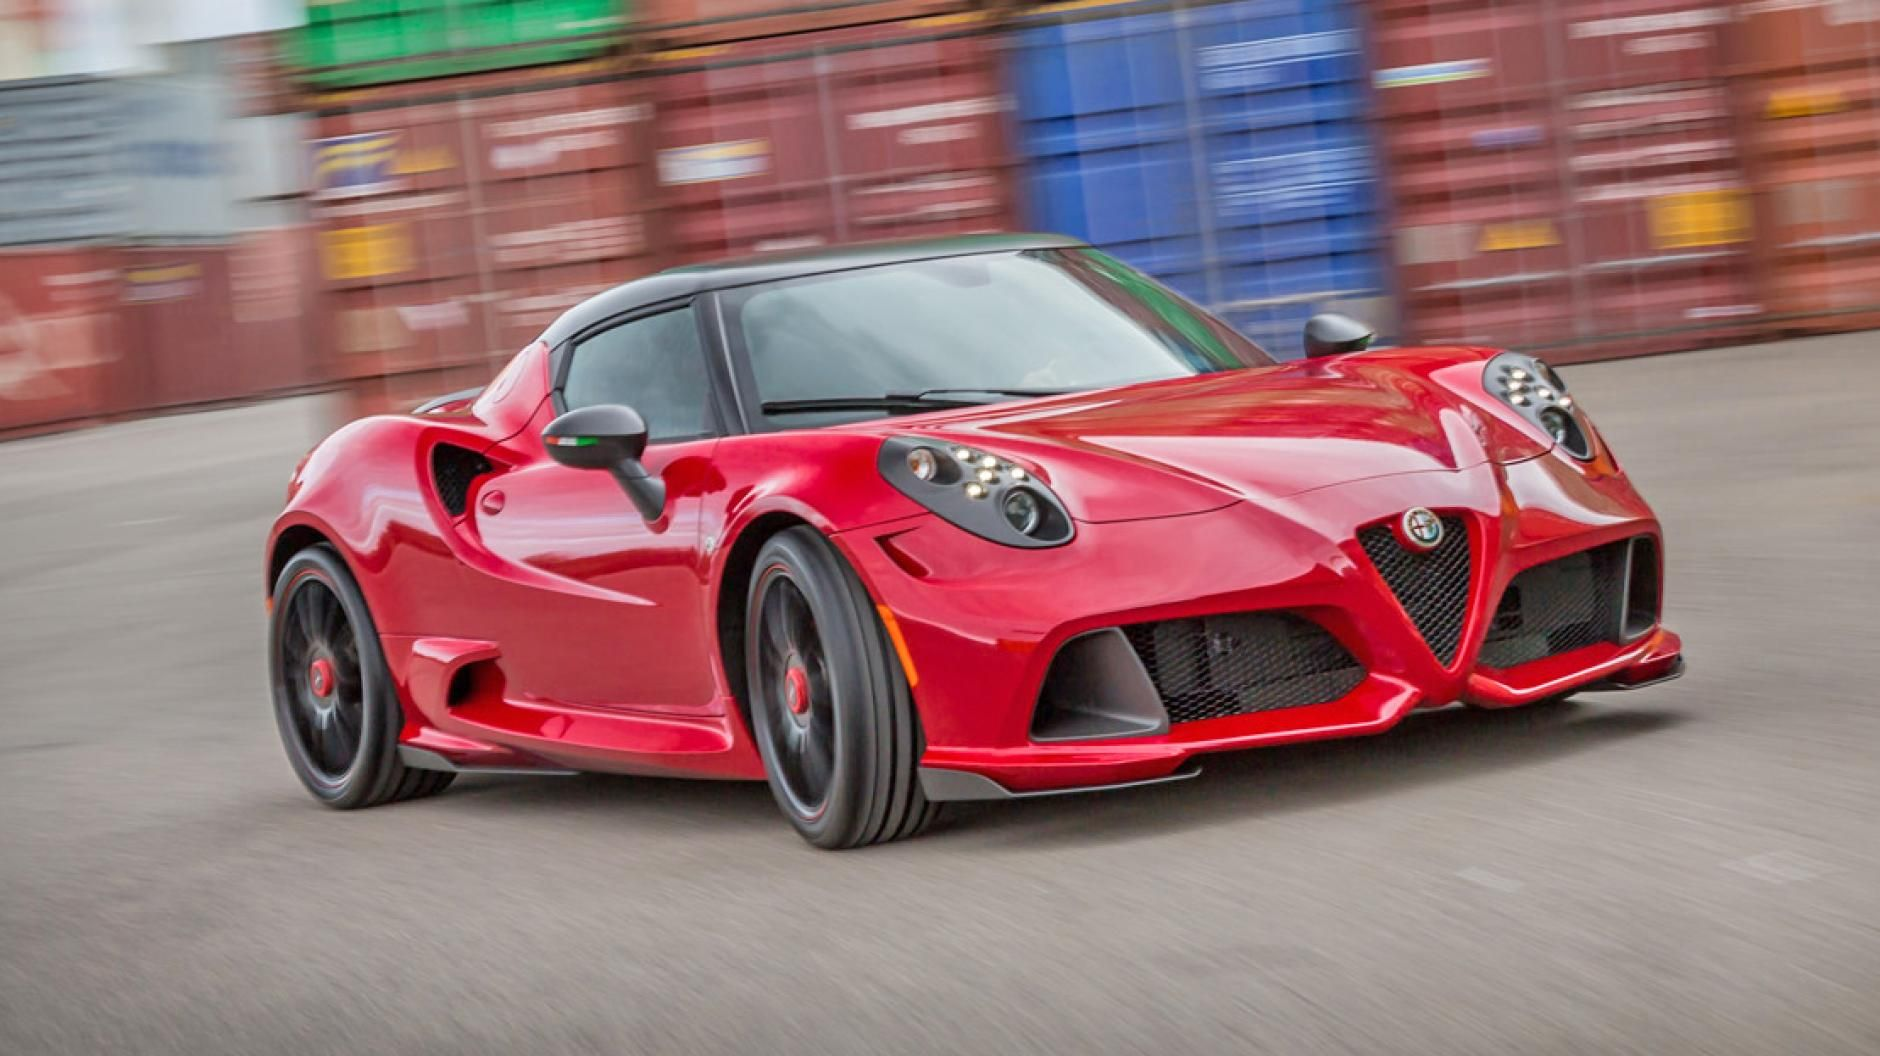 alfa romeo 4c gt3 recherche google alfa romeo pinterest alfa romeo 4c alfa romeo and. Black Bedroom Furniture Sets. Home Design Ideas